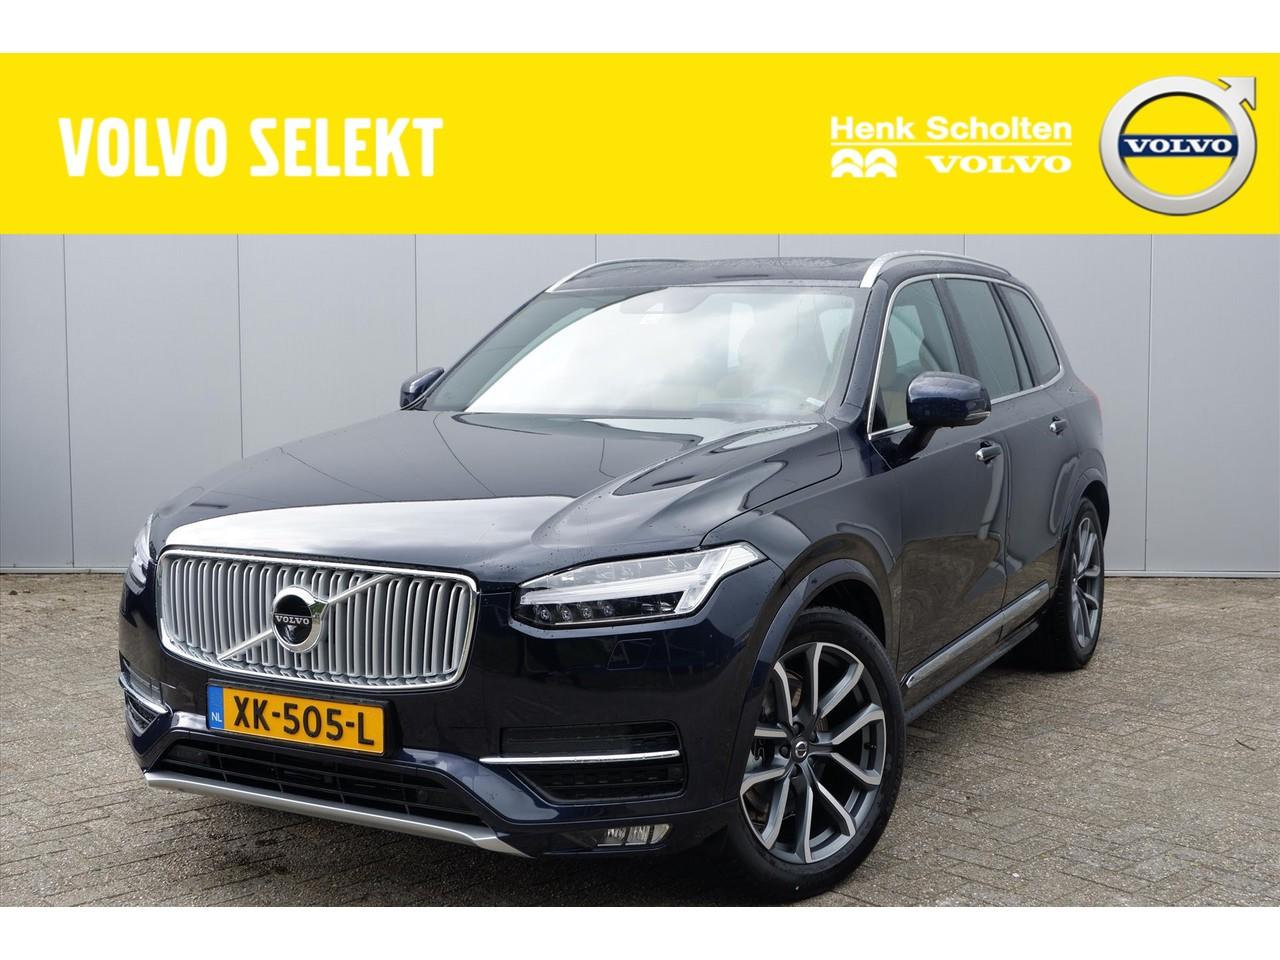 Volvo Xc90 T5awd 250pk aut8 7p inscription & more